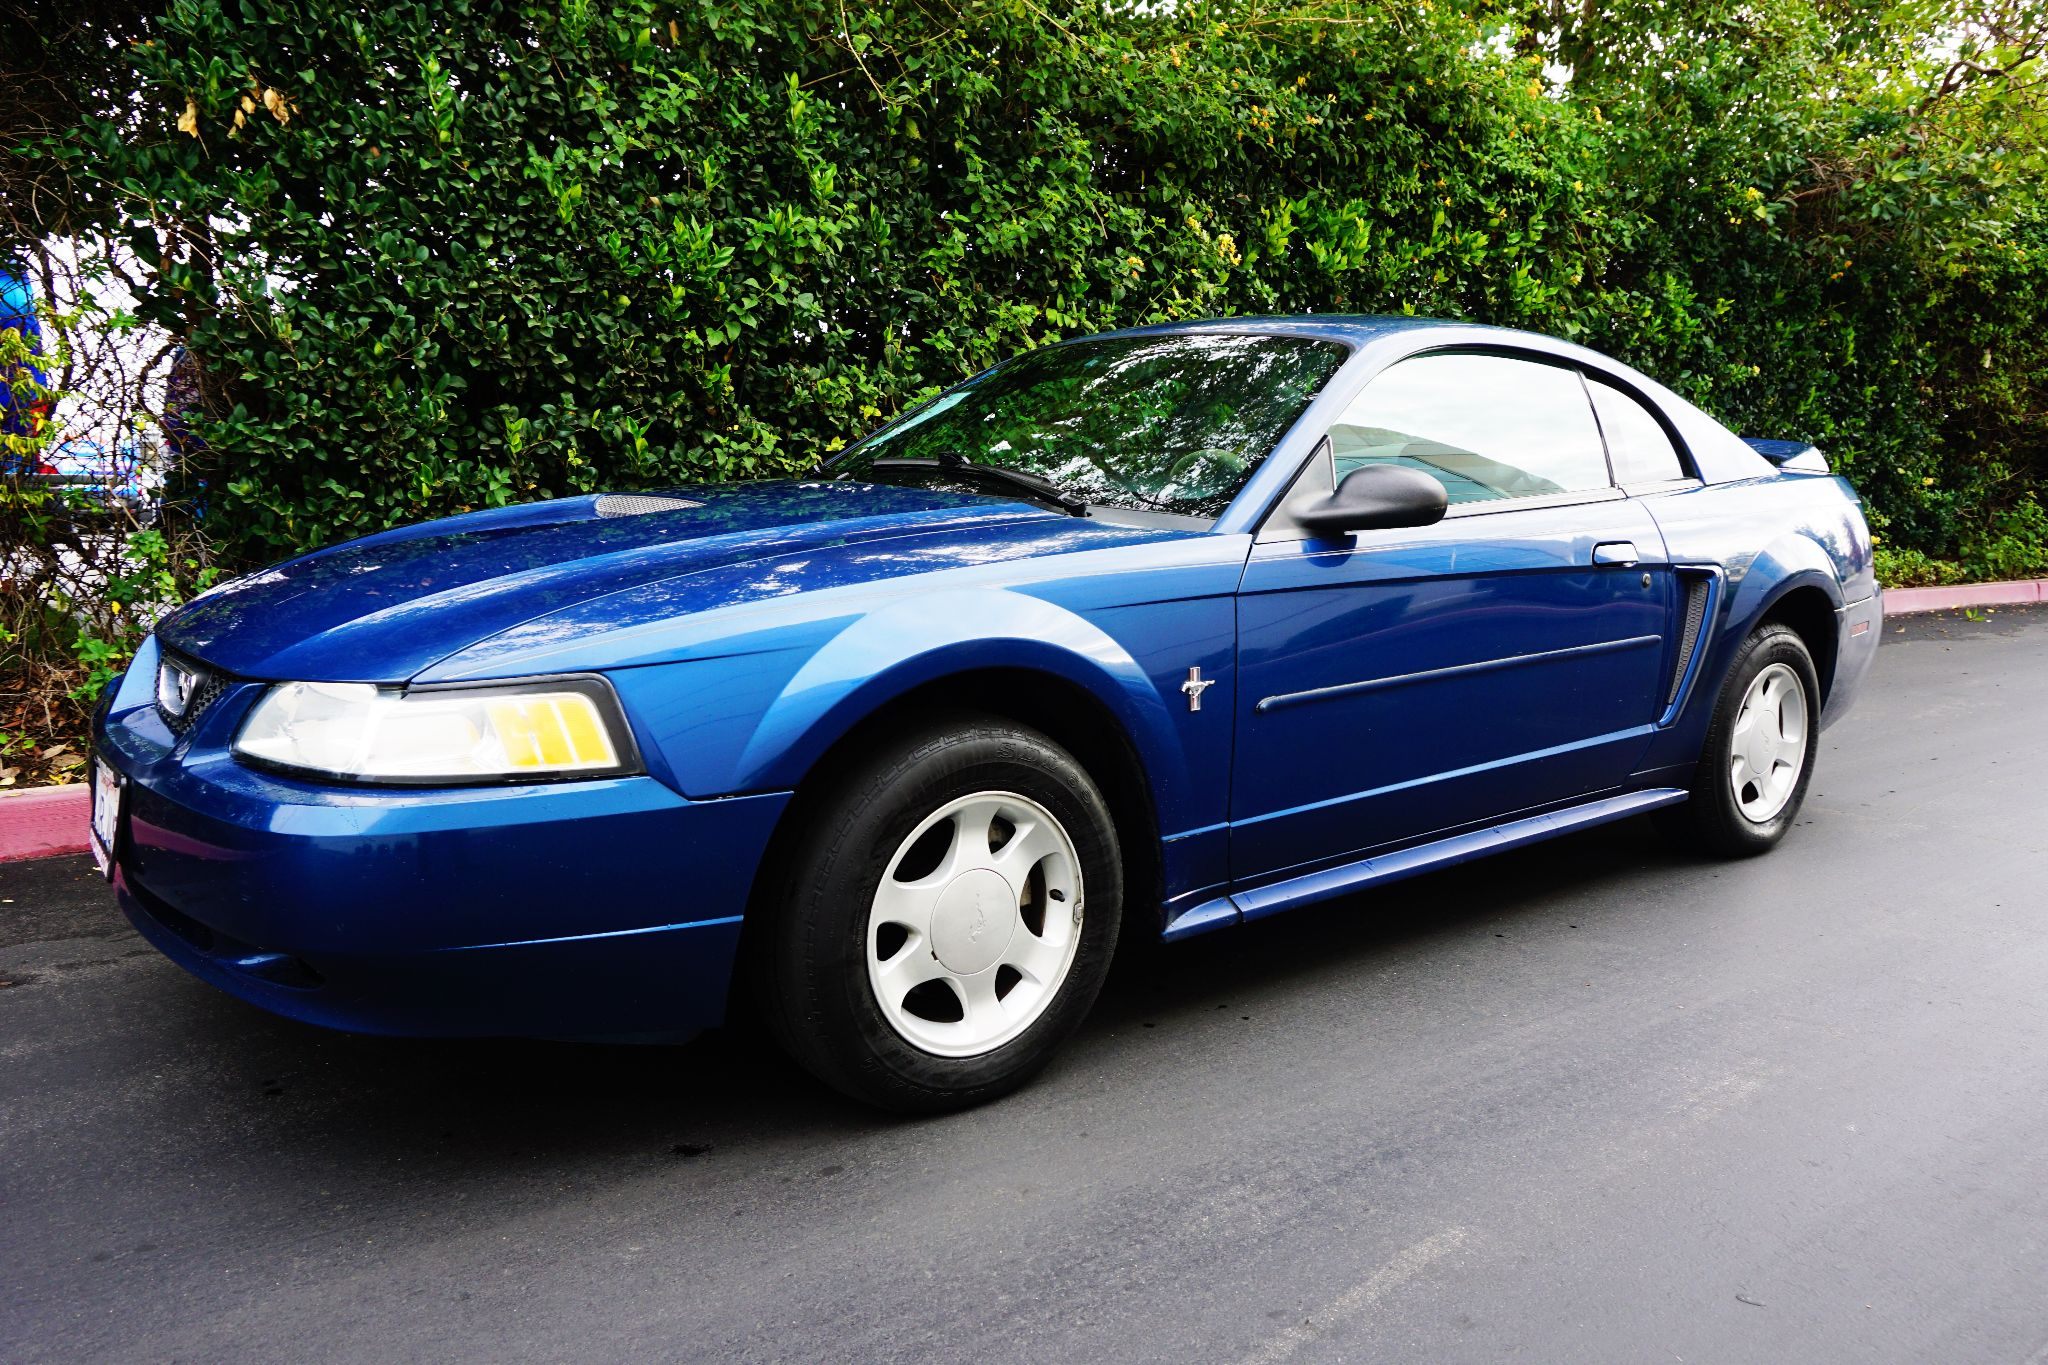 2000 Ford Mustang V6. Our Price $2975 & Used 2000 Ford Mustang V6 at City Cars Warehouse INC markmcfarlin.com